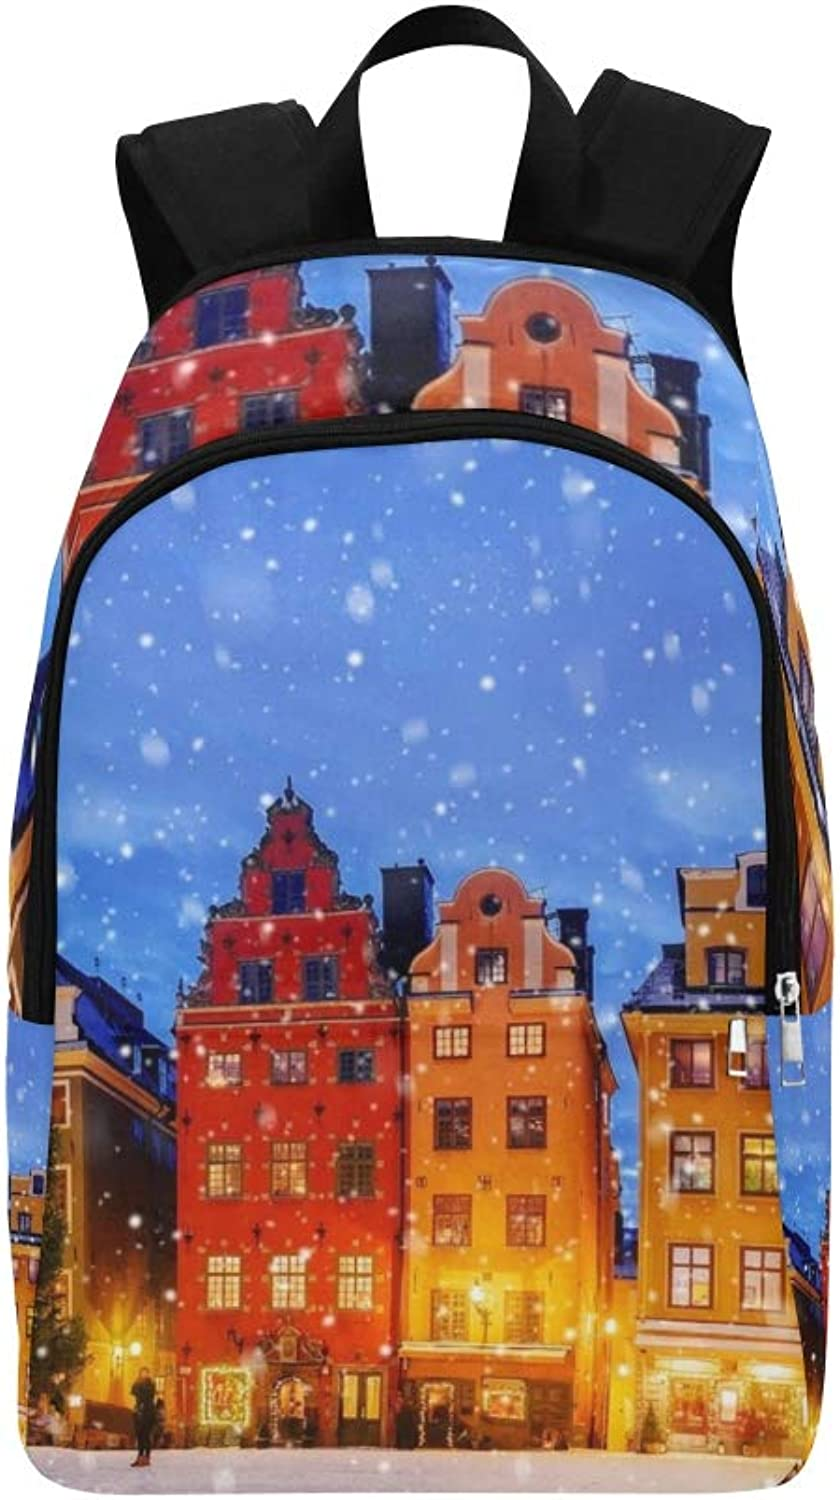 Christmas Holm Sweden Casual Daypack Travel Bag College School Backpack for Mens and Women